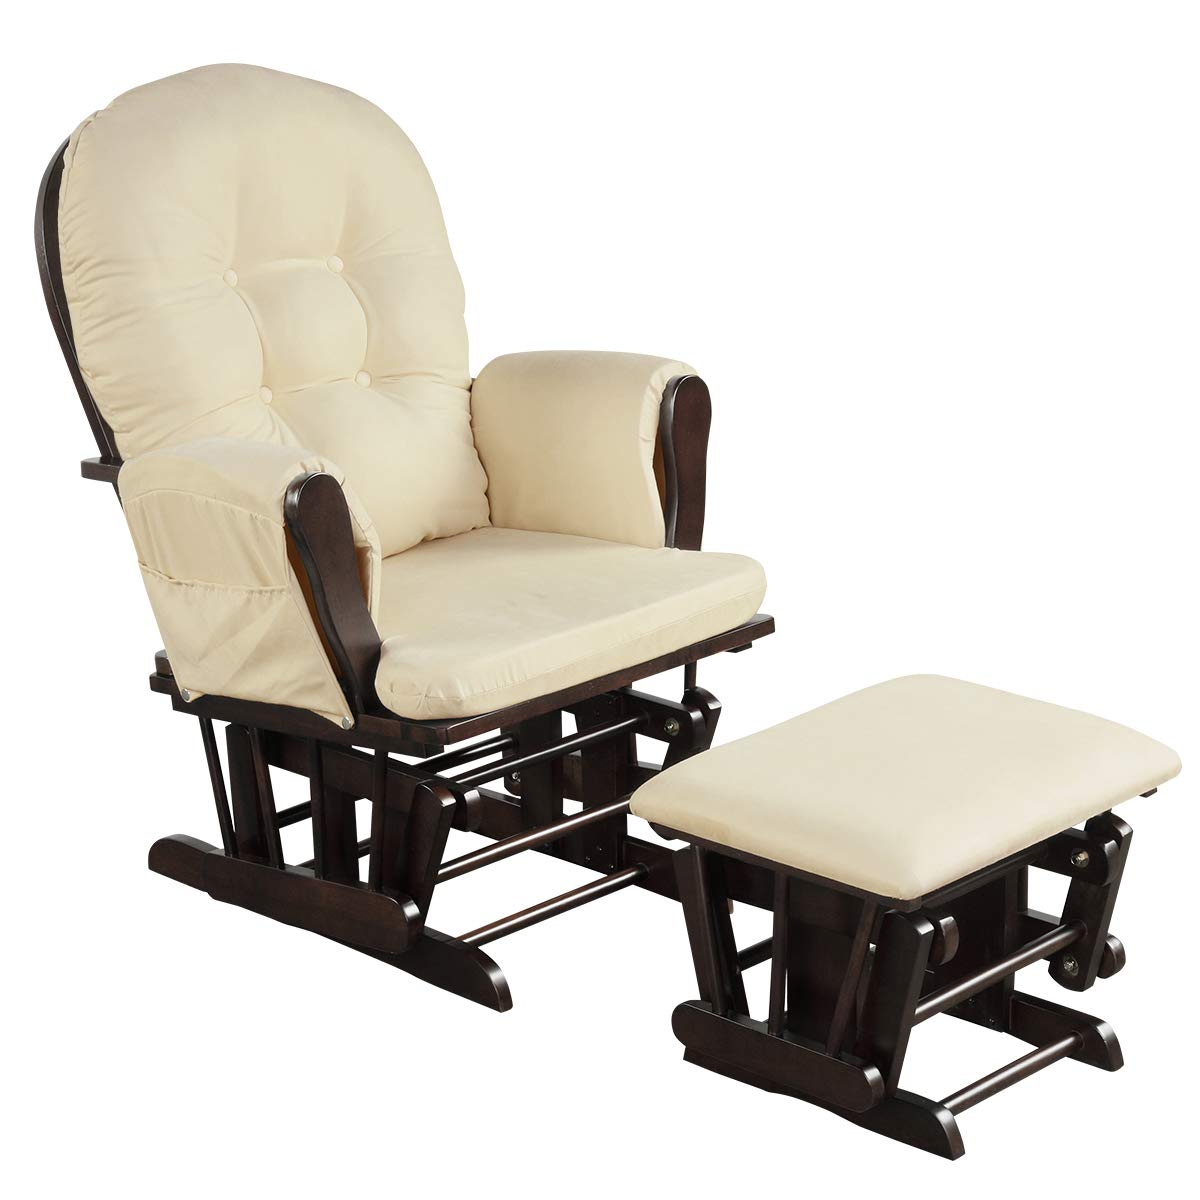 Costzon Best Baby Nursery Glider and Ottoman